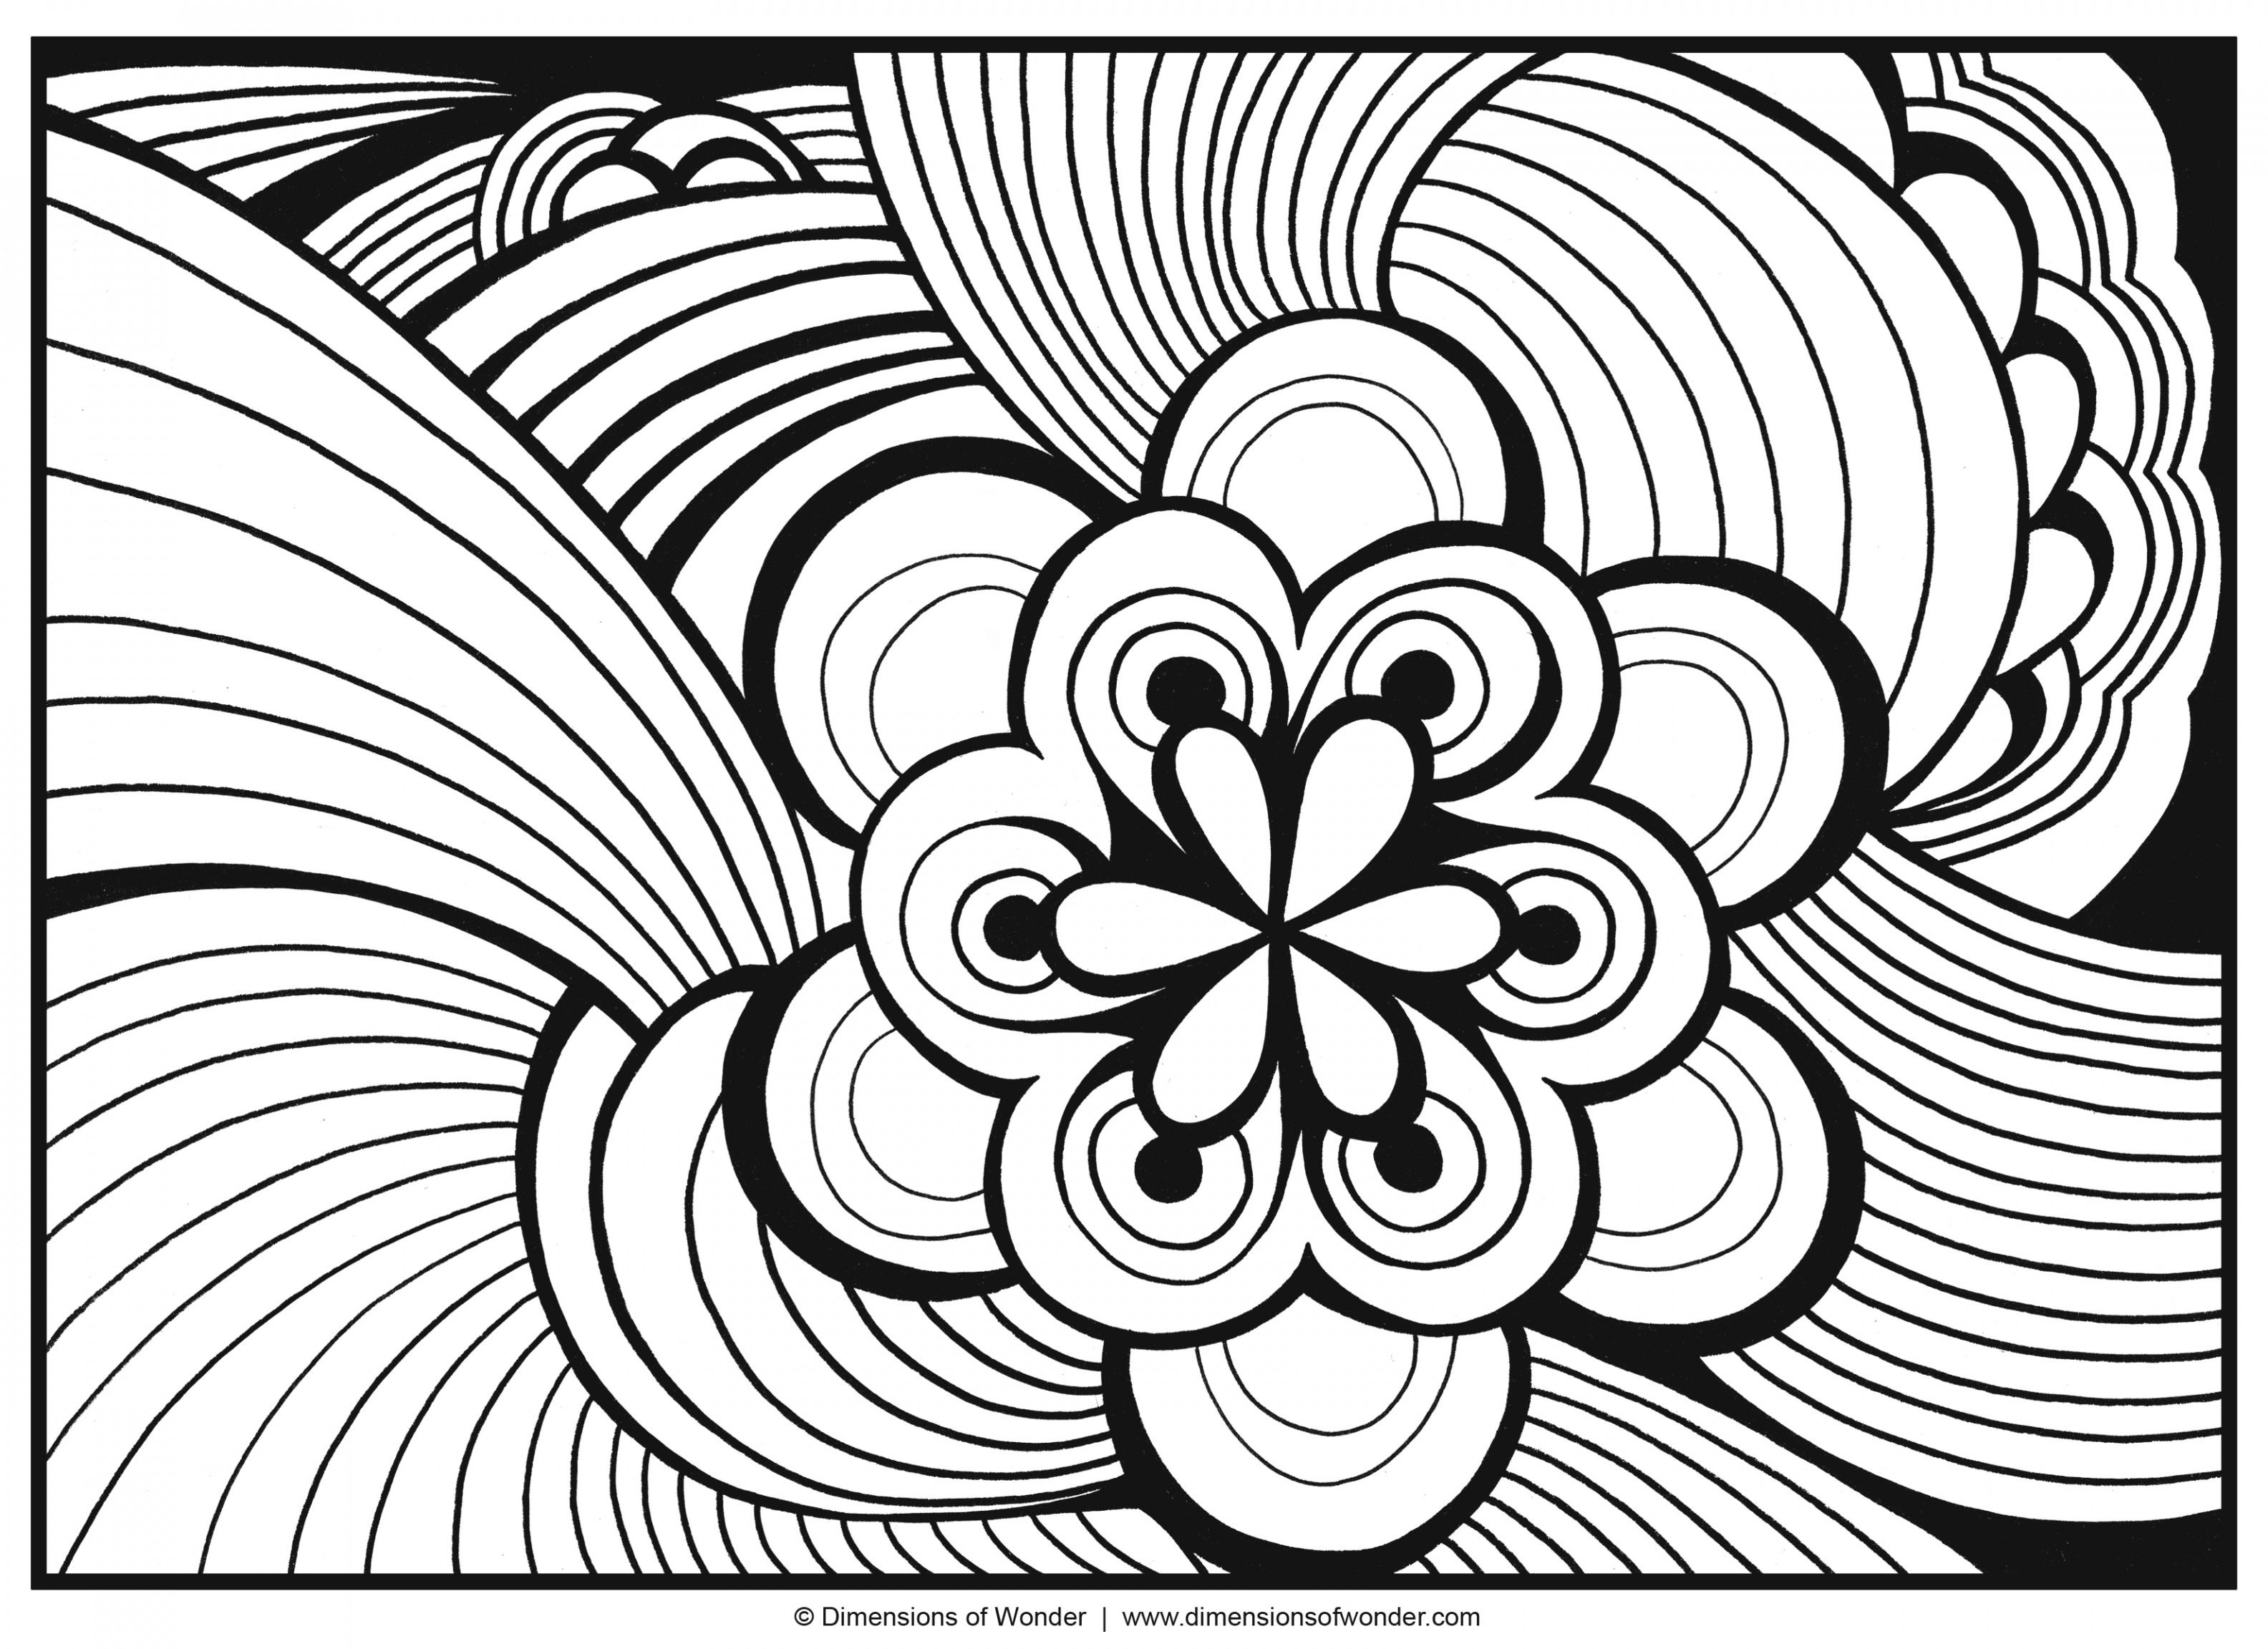 3168x2304 Challenge Weird Design Coloring Pages Teenage Of Flowers